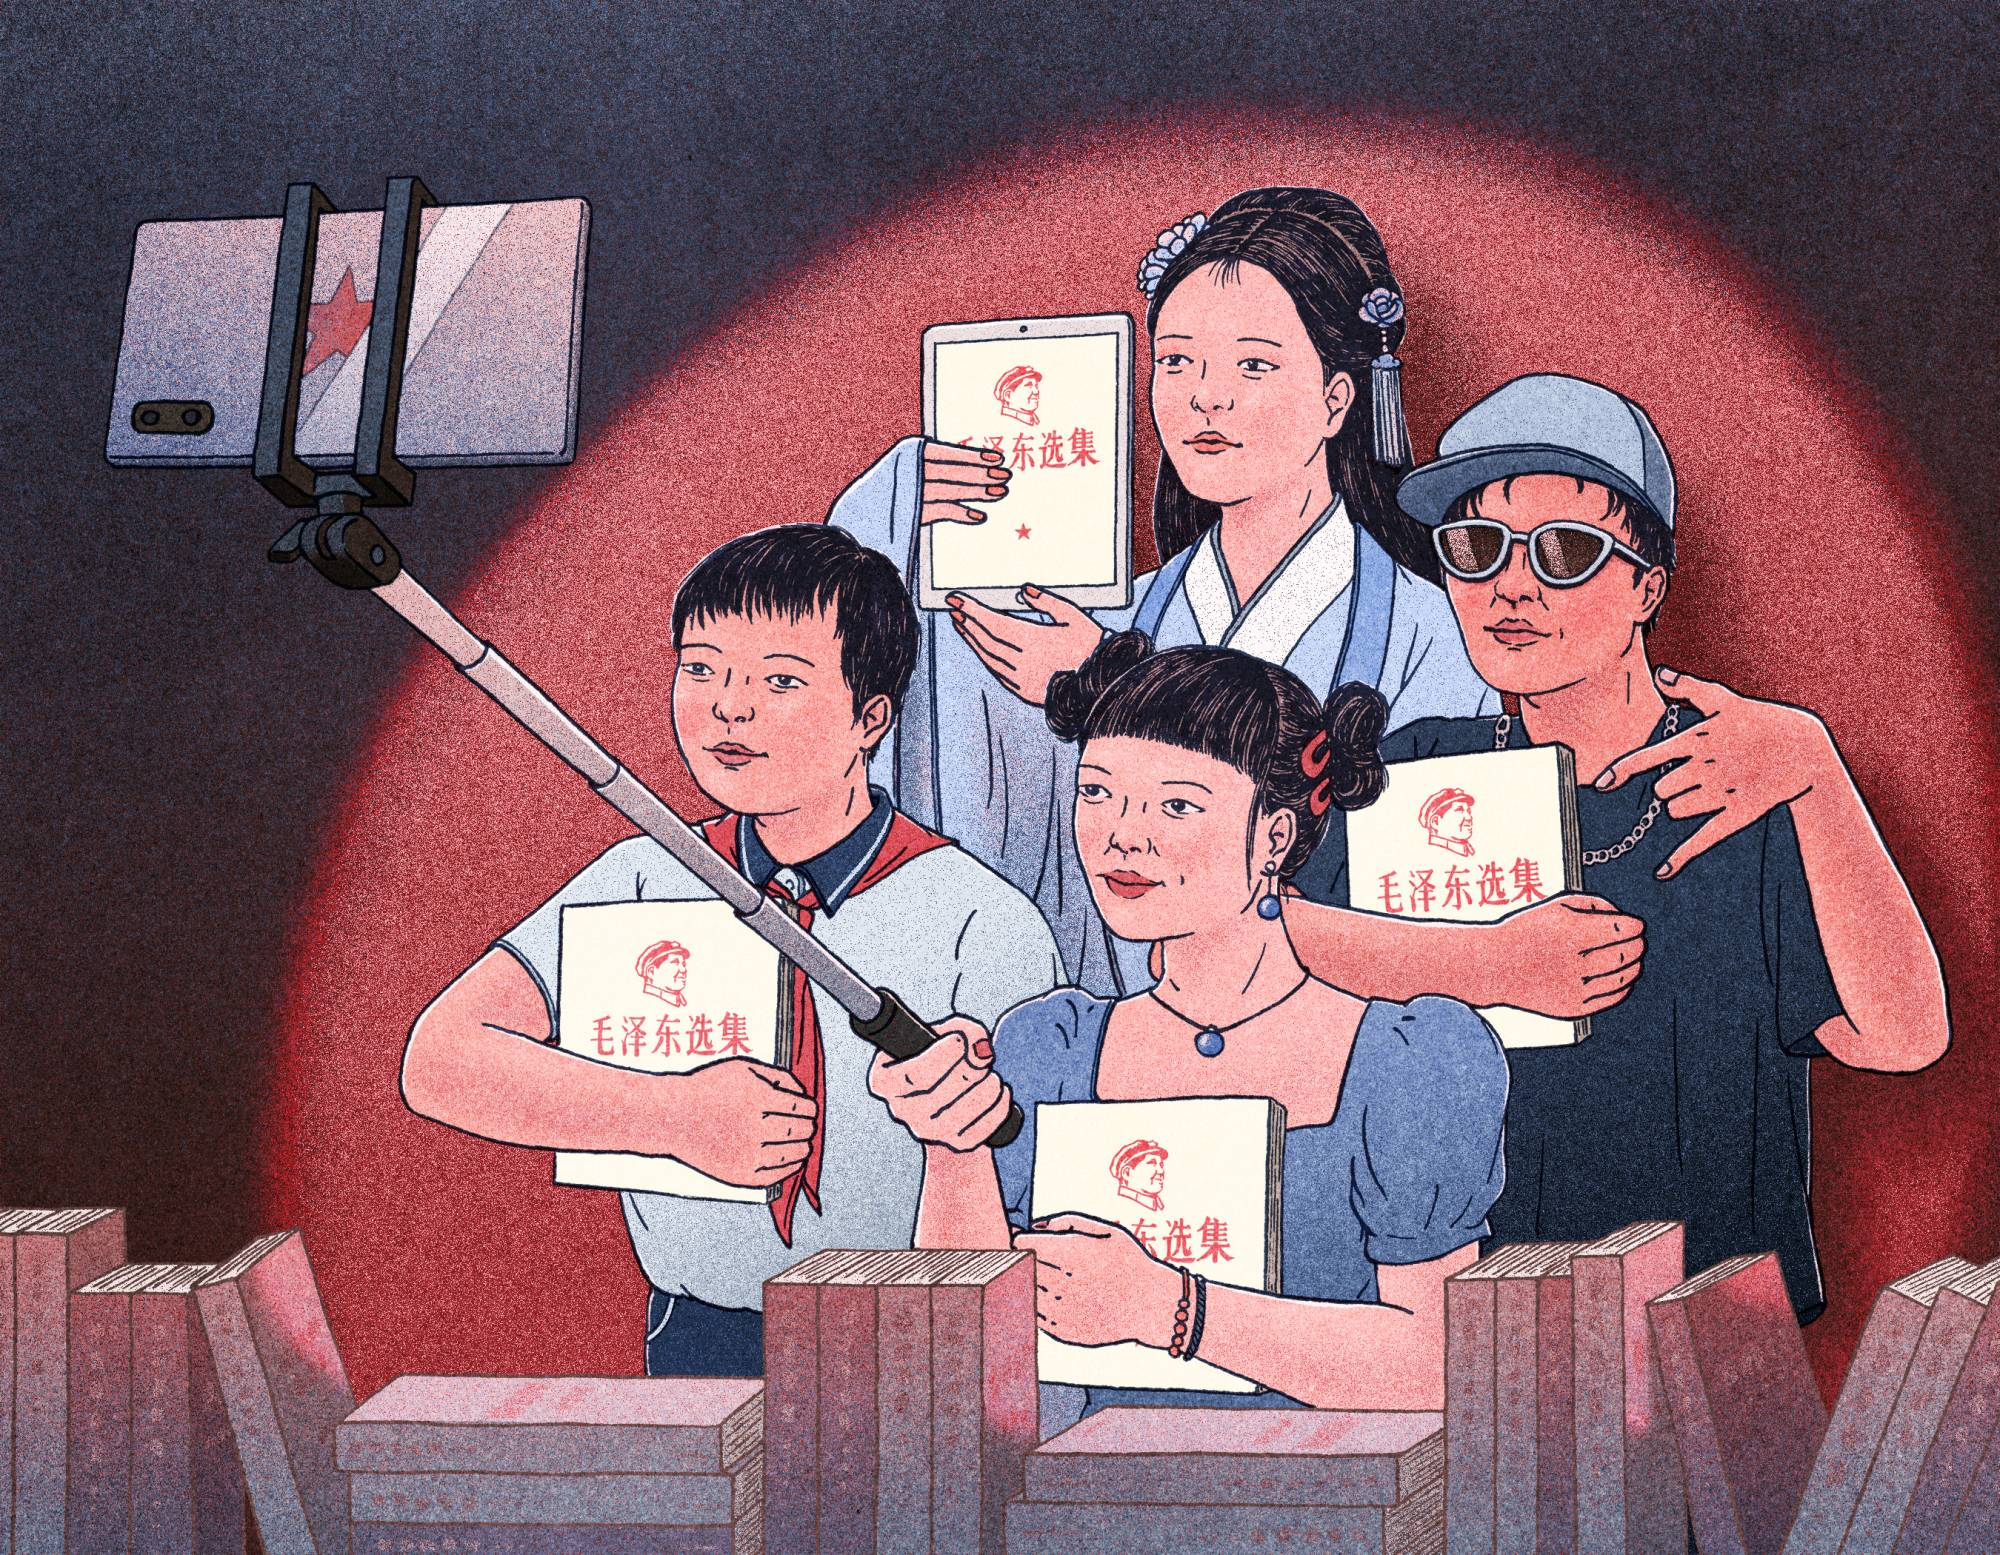 Chairman Mao is making a comeback among China's Generation Z. His call for struggle and violence against capitalists is winning over a new audience of young people frustrated with long work hours and dwindling opportunities.   XINMEI LIU/THE NEW YORK TIMES